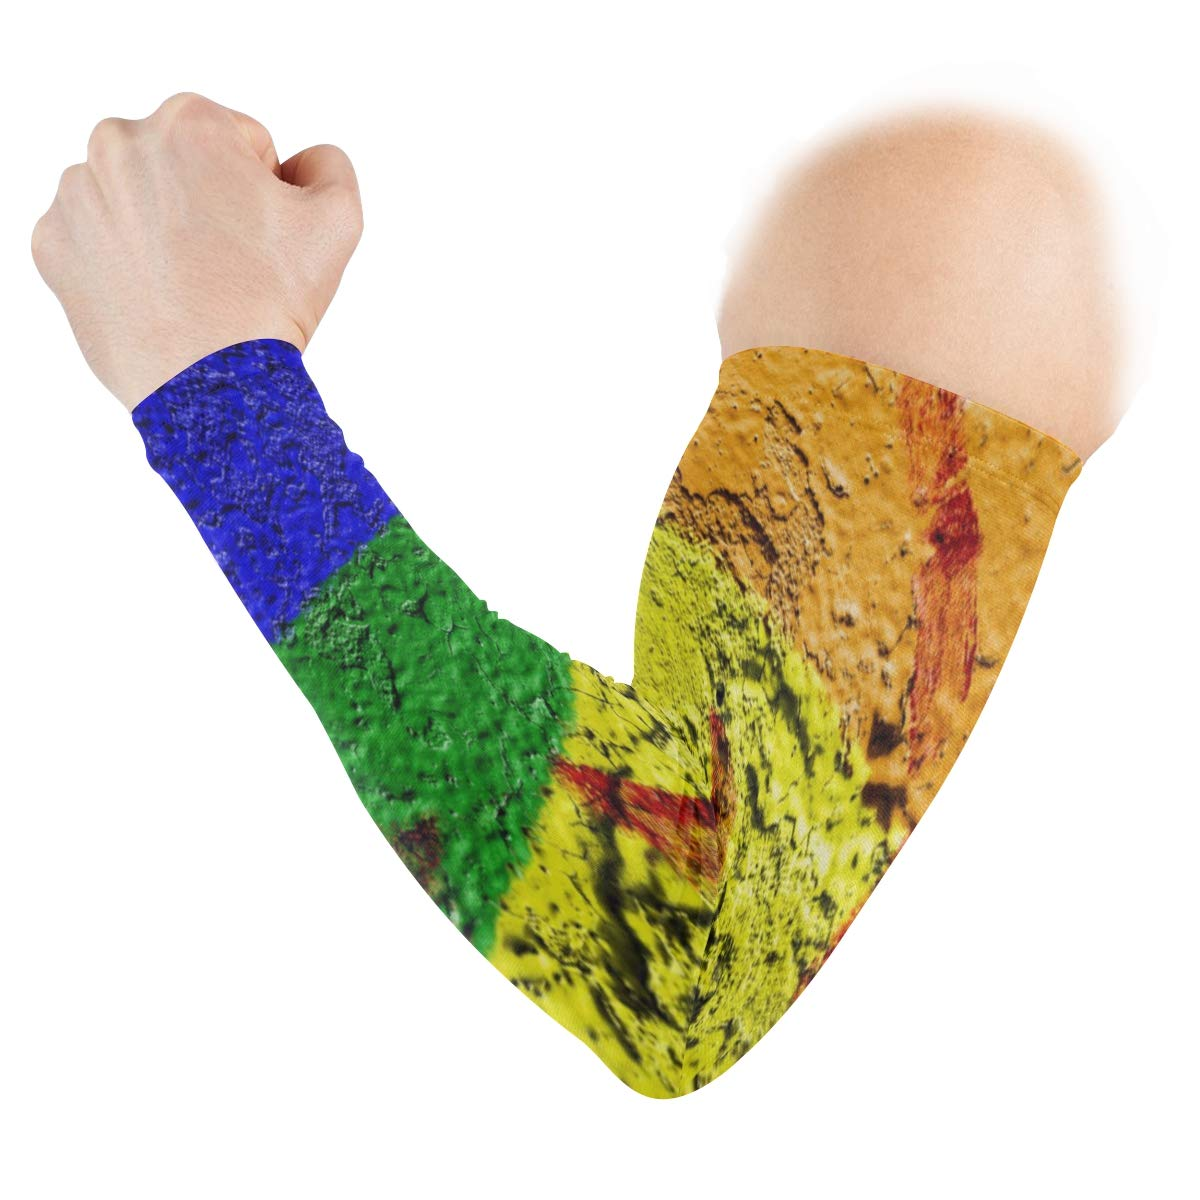 Arm Sleeves LGBTQ Youth Suicide Prevention Program Mens Sun UV Protection Sleeves Arm Warmers Cool Long Set Covers